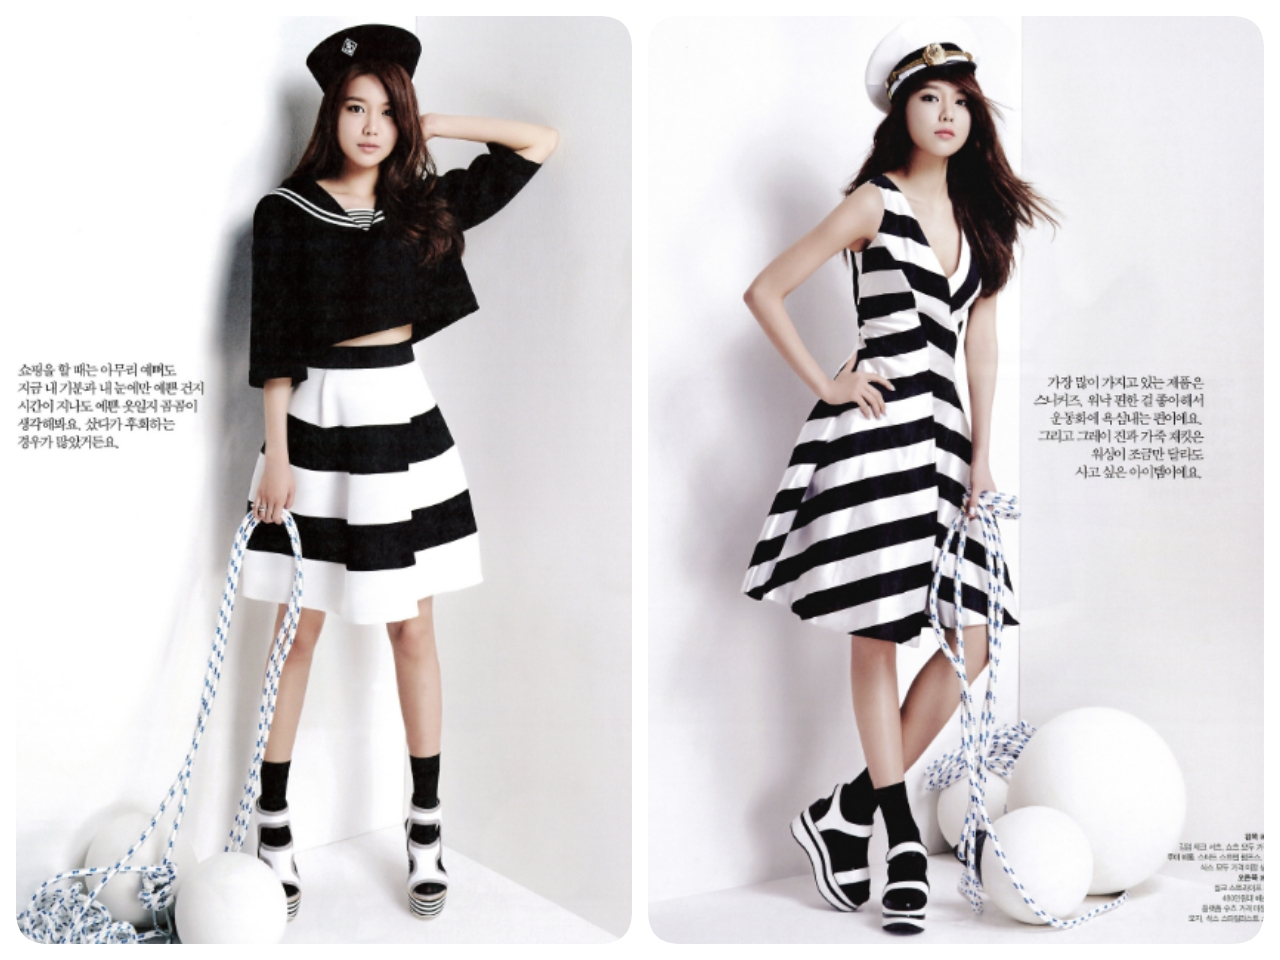 SNSD Soo Young - The Celebrity Magazine June Issue2